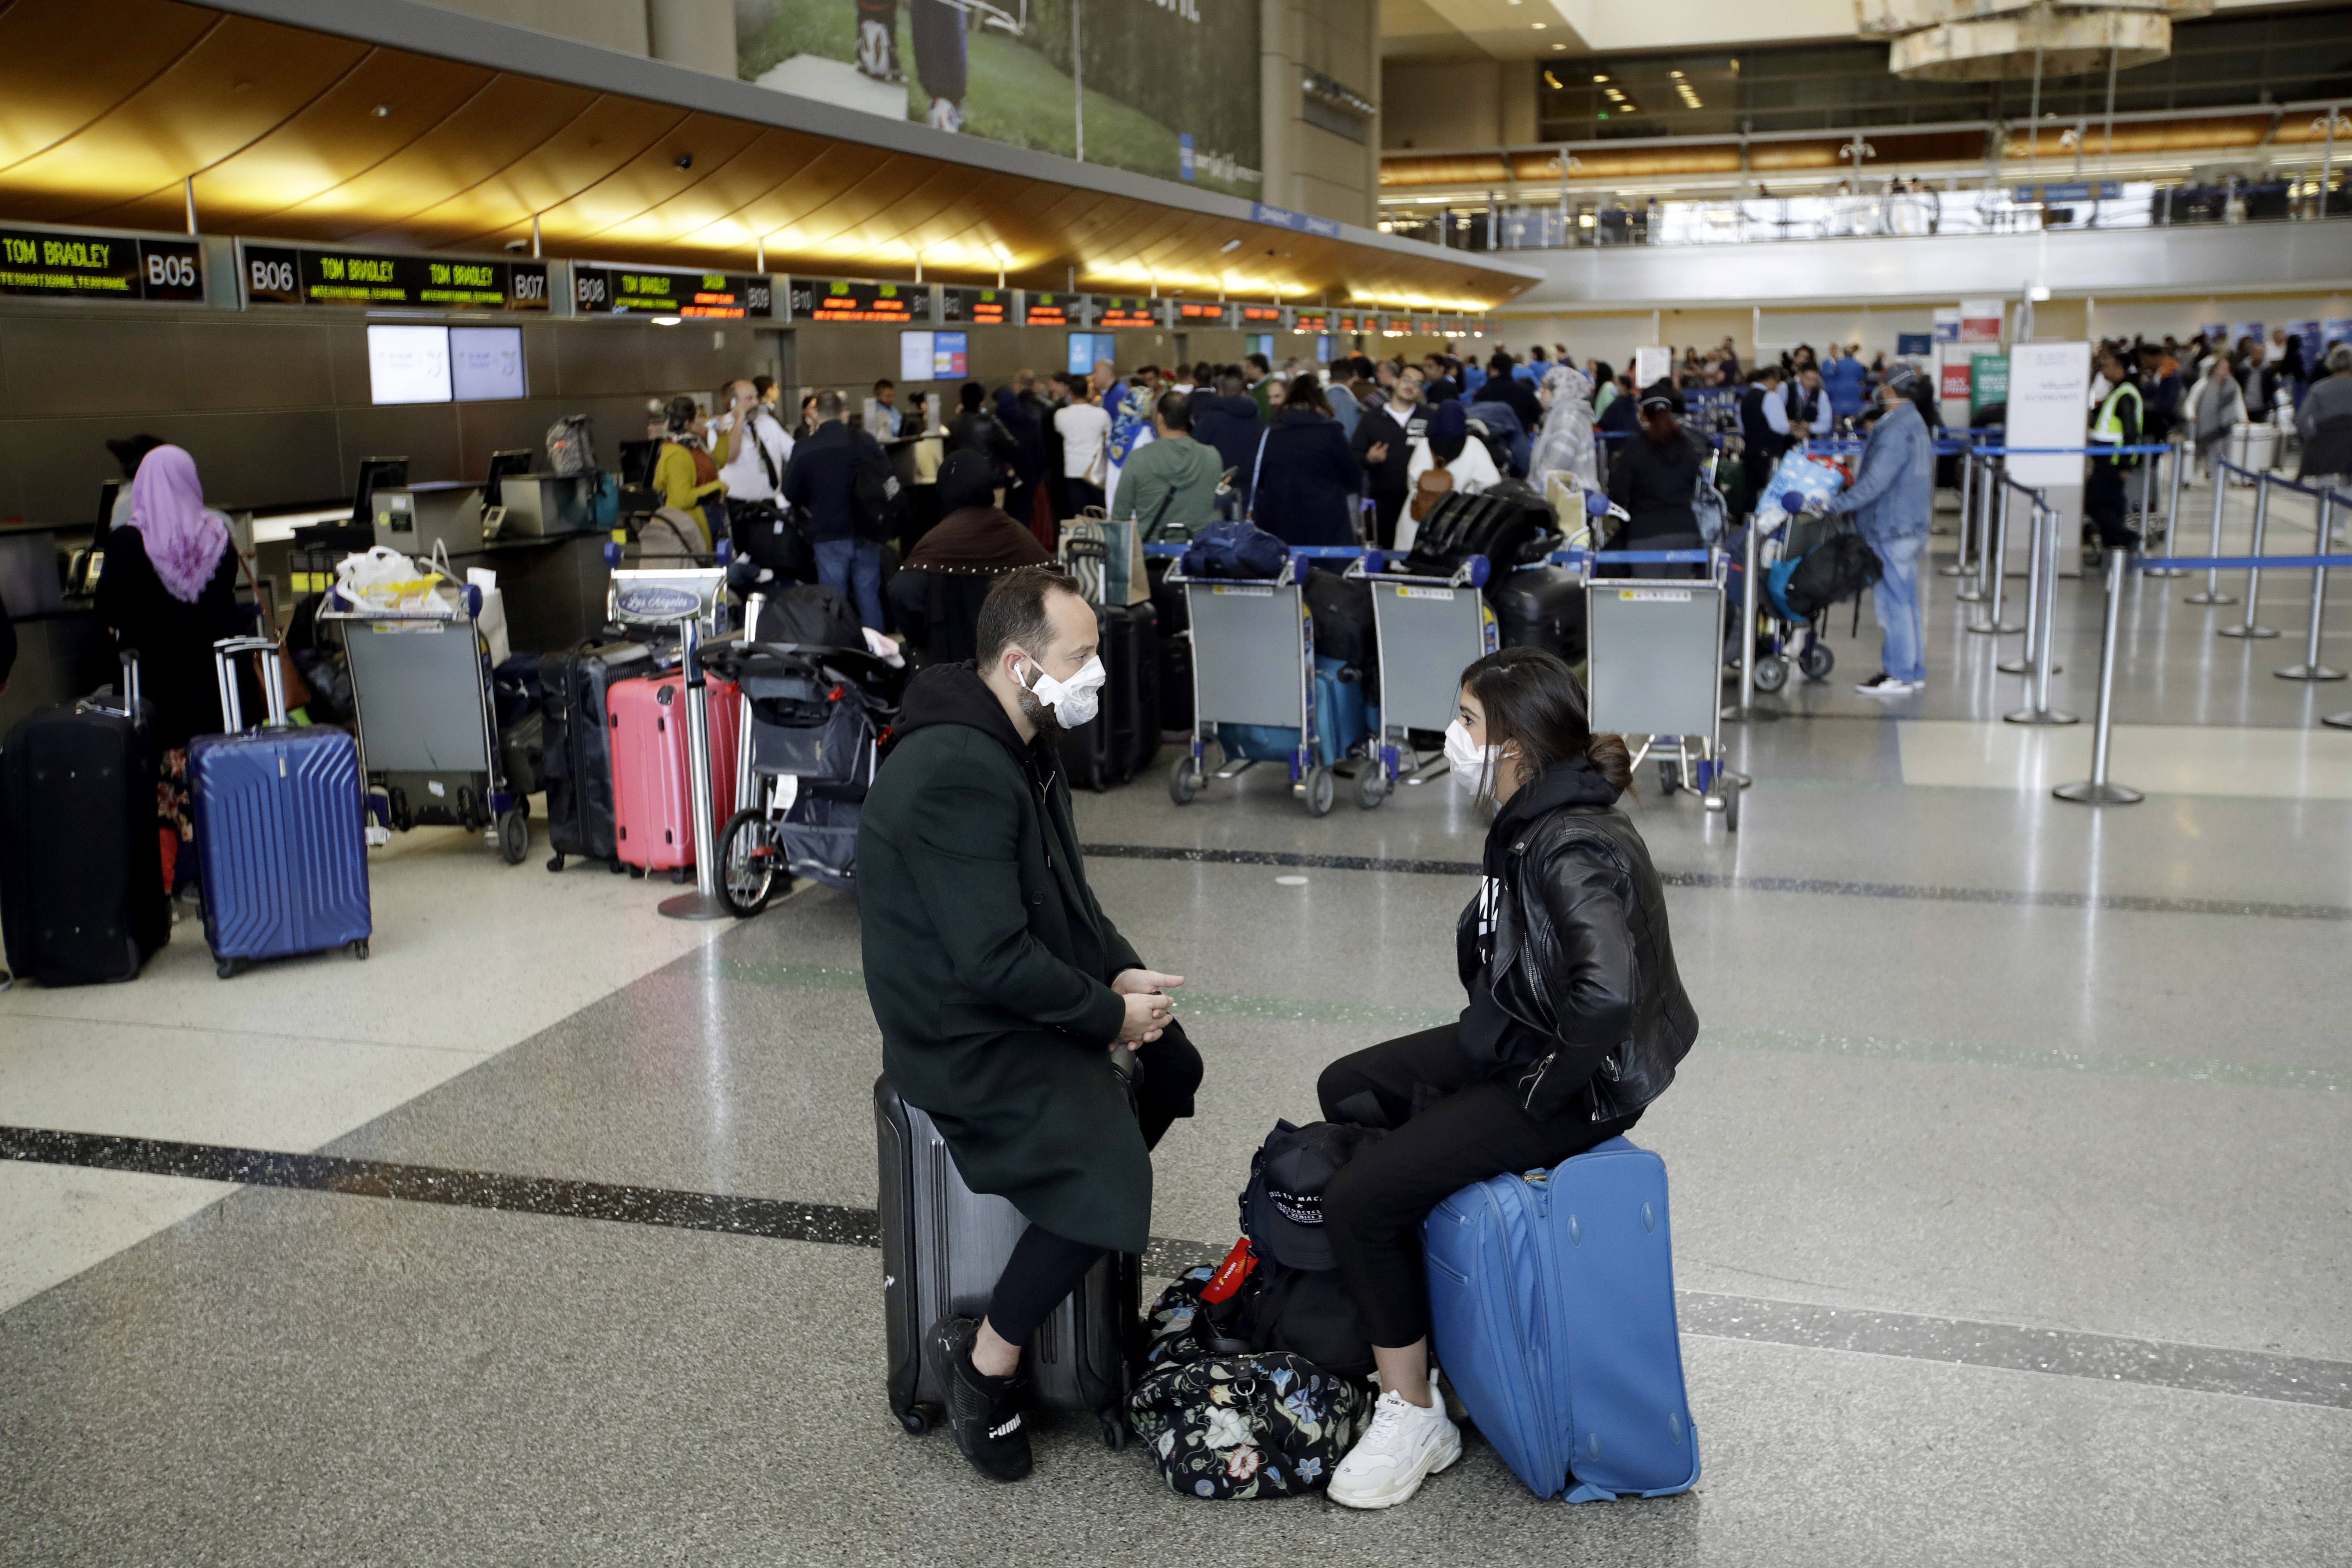 In this Saturday, March 14, 2020 file photo, travelers wait to check in their luggage at the Los Angeles International Airport. The coronavirus pandemic that's caused many Americans to avoid airports has others booking spur-of-the moment trips at dirt-cheap ticket prices.